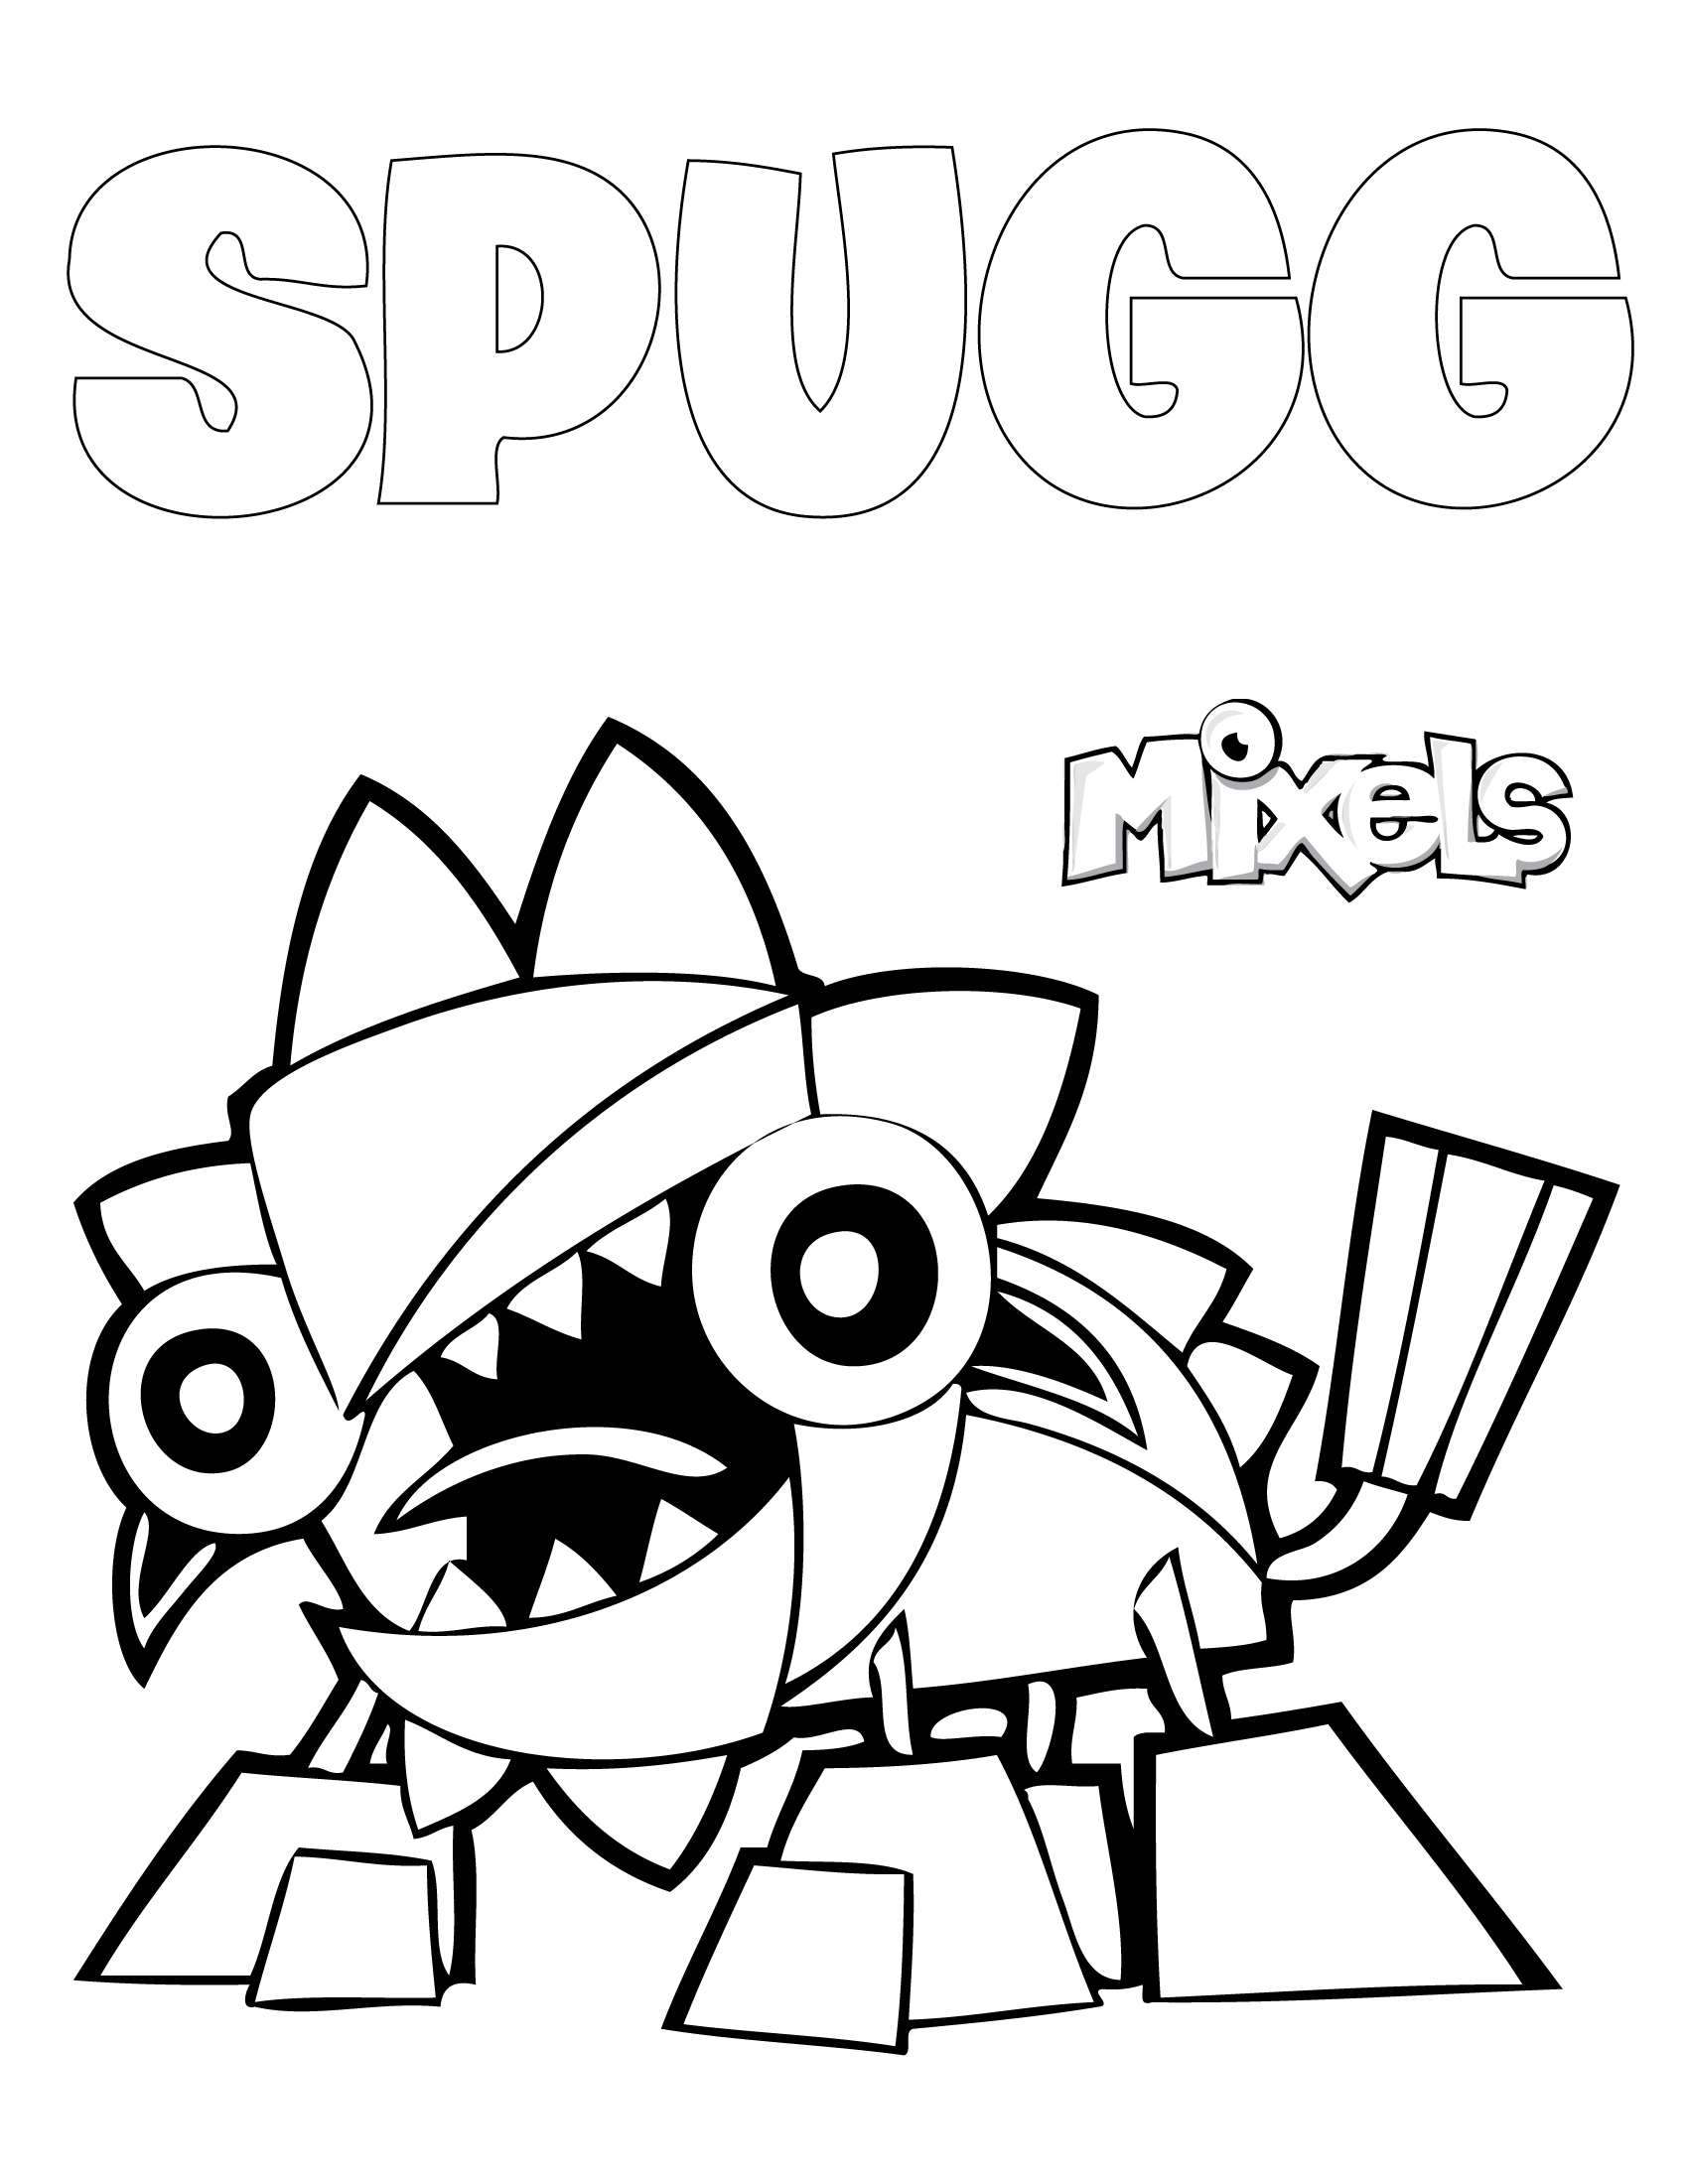 mixels coloring pages - mixels coloring pages my little corner page 2